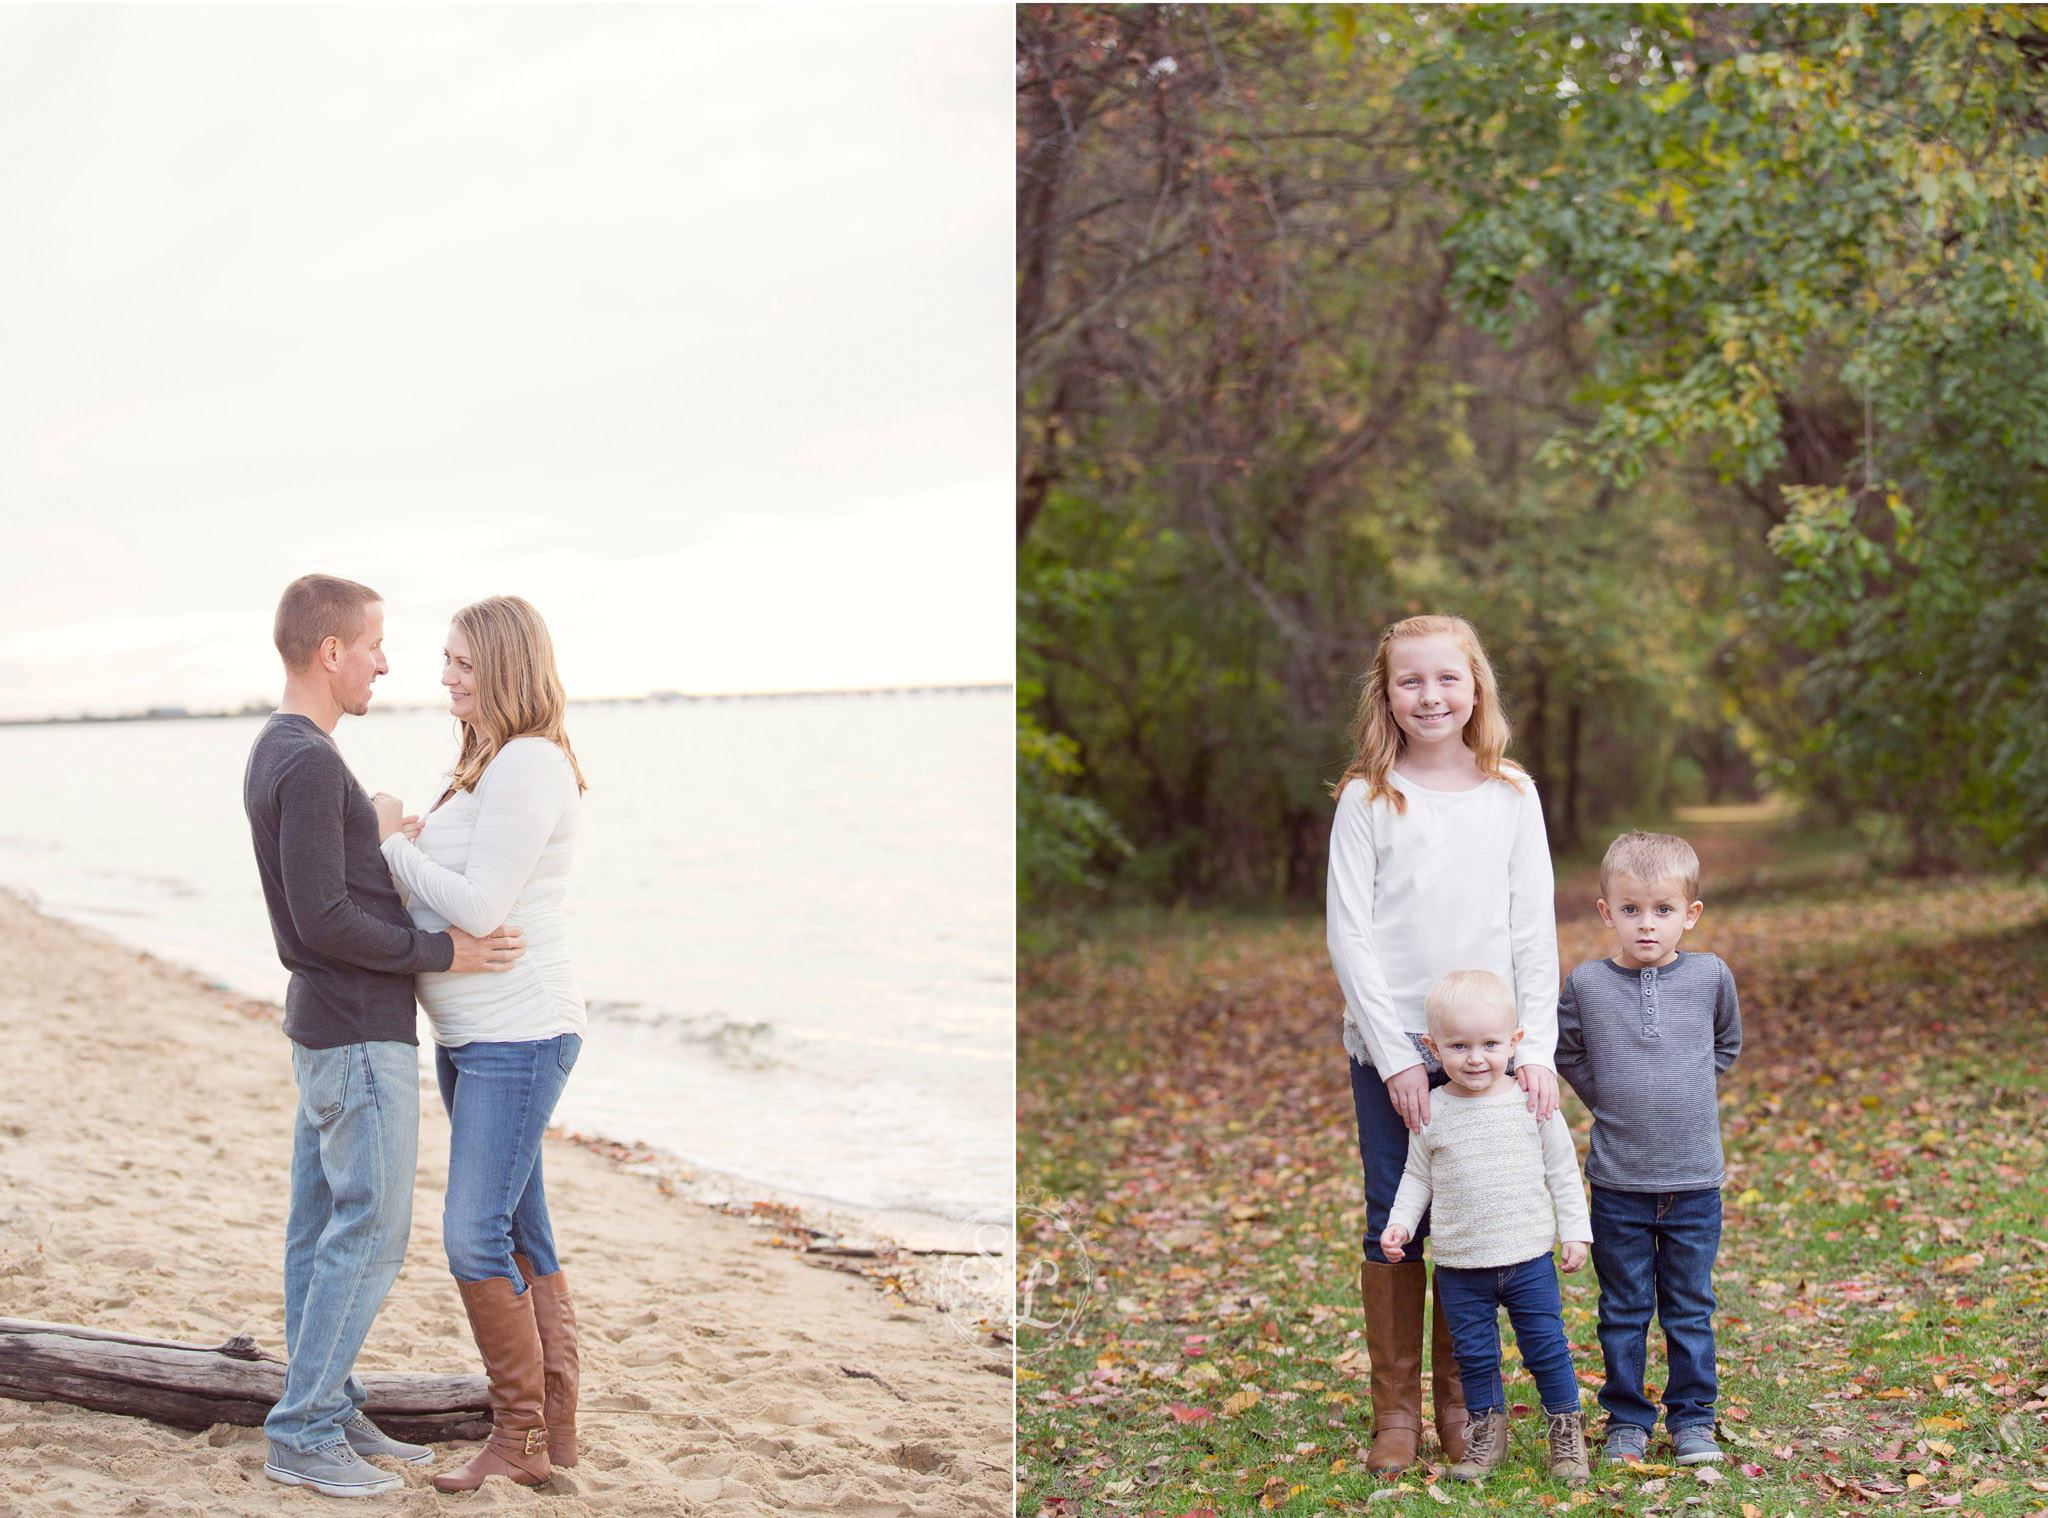 Bross'net Bross Family Stevensville Maryland Family Photographer